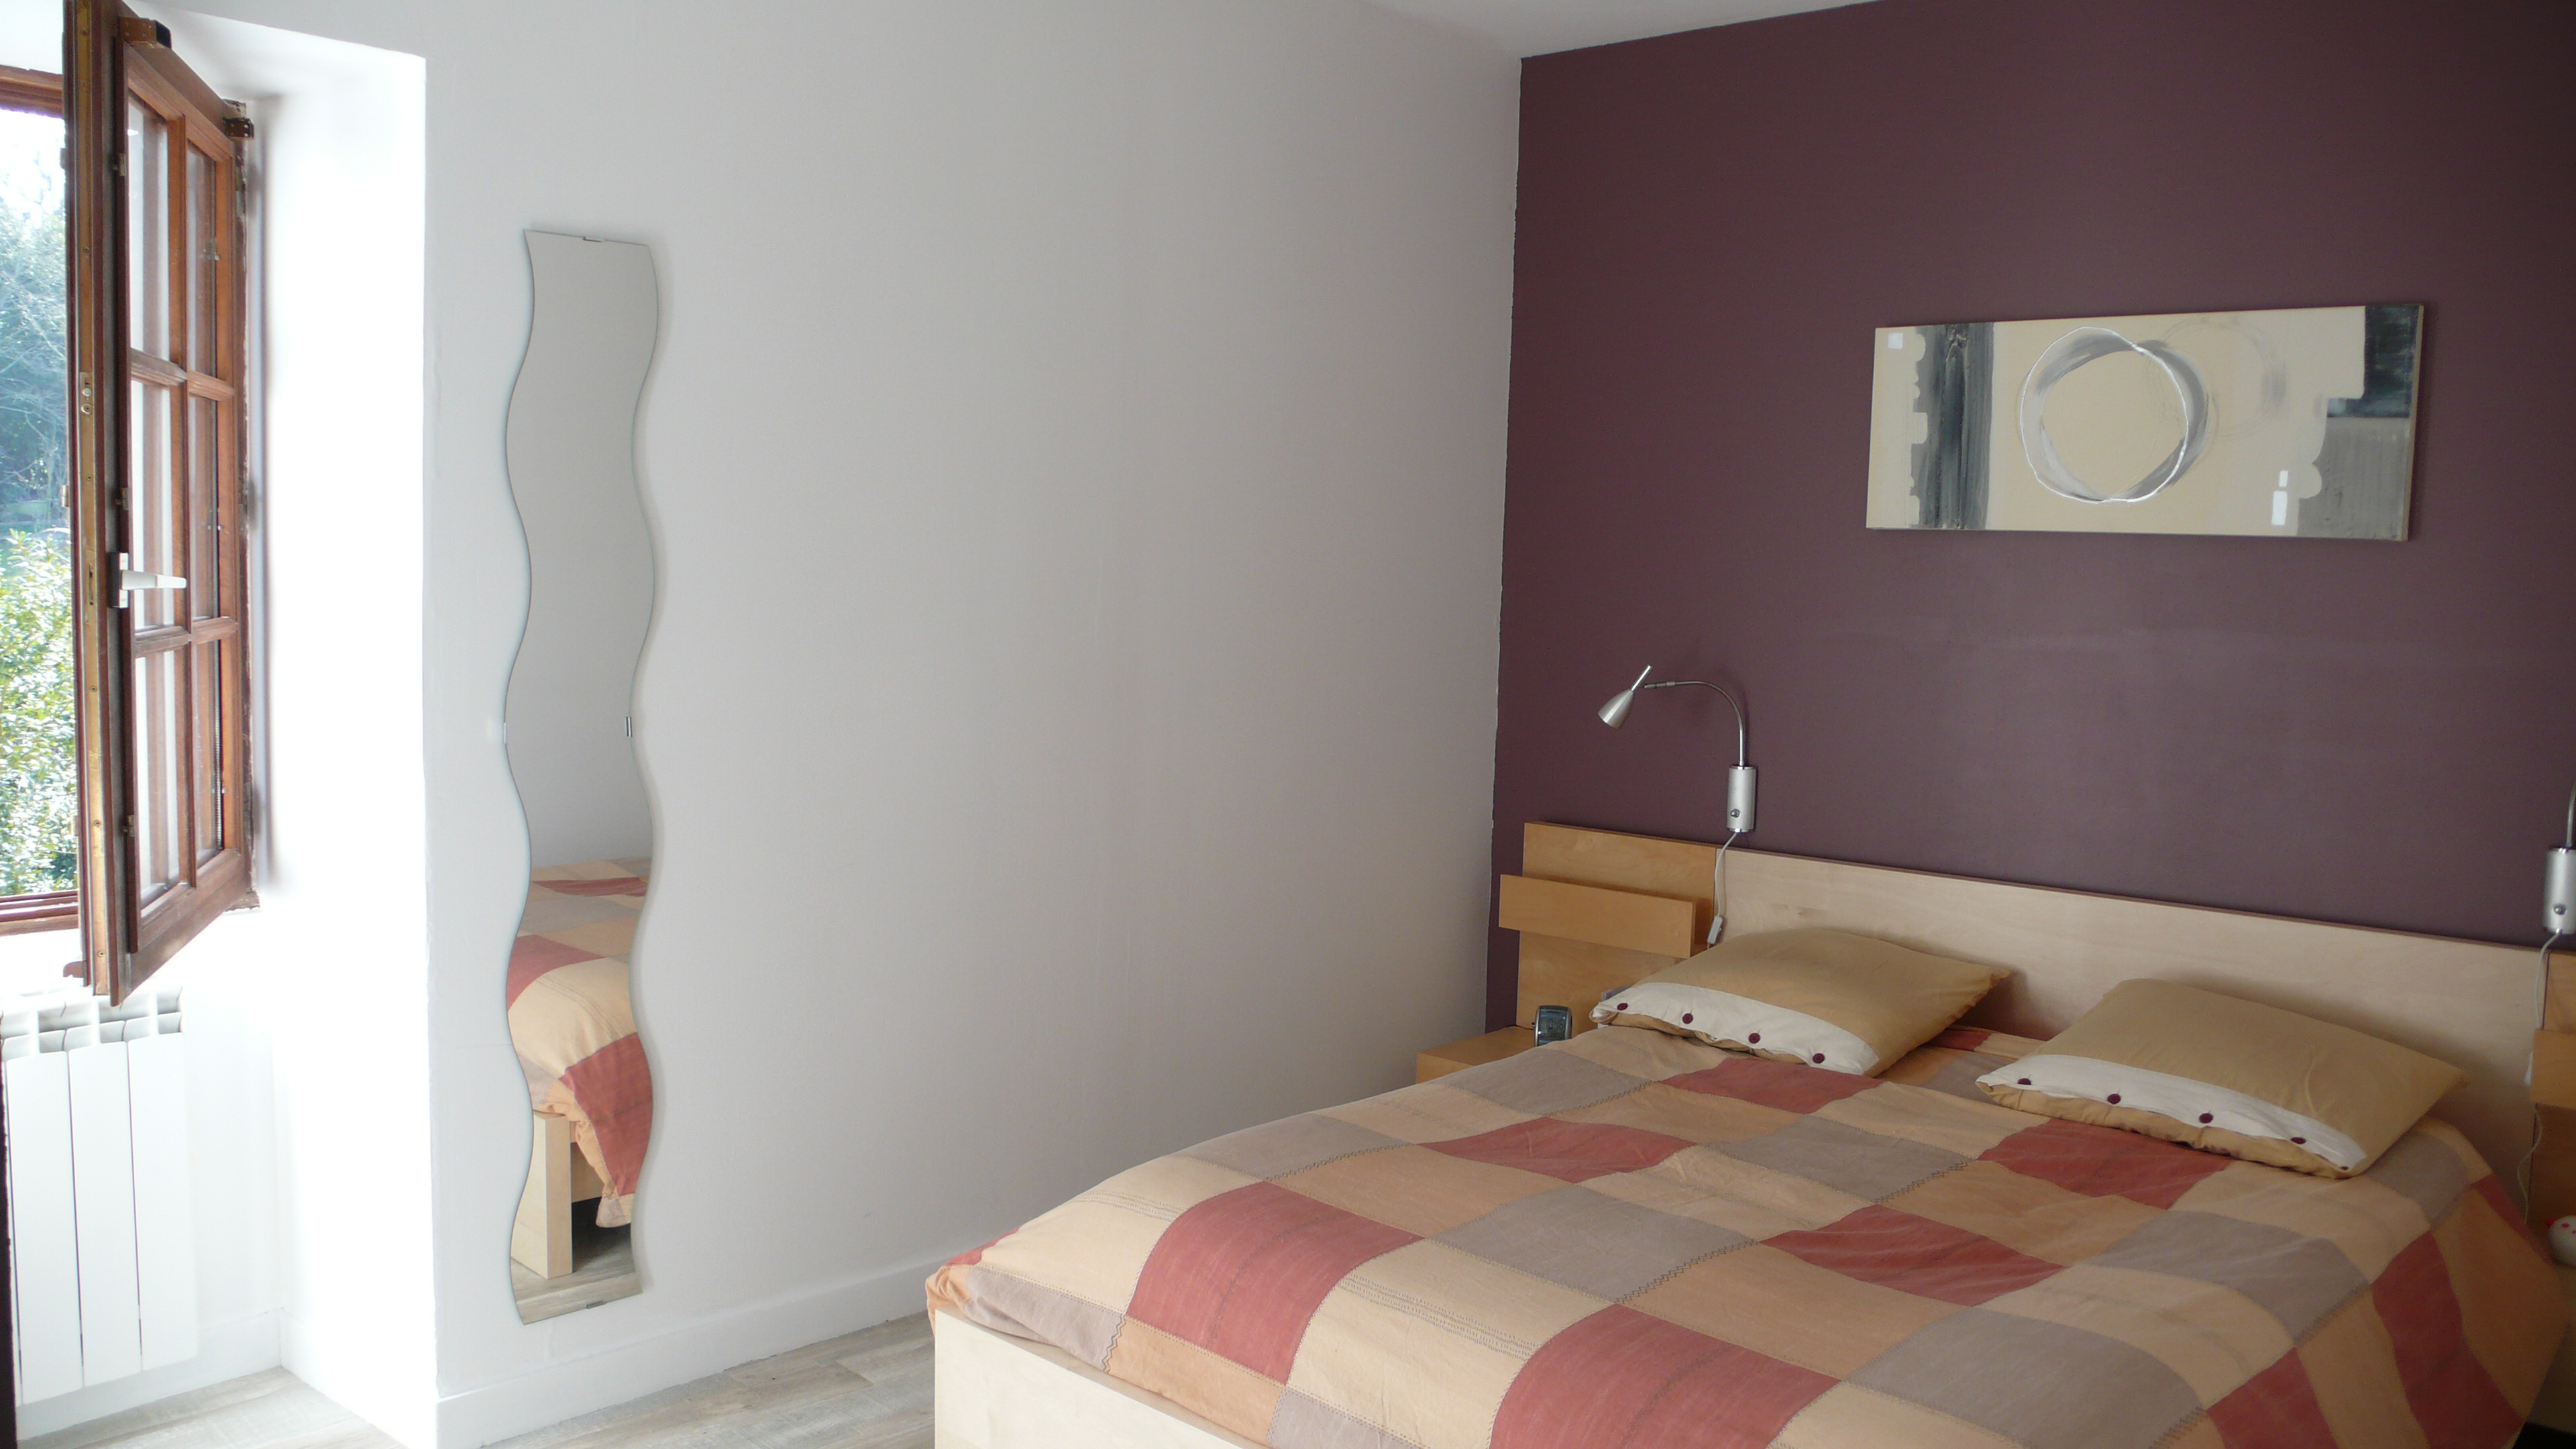 Place simon r nov de la chambre en colocation parents b b for Ambiance deco chambre adulte